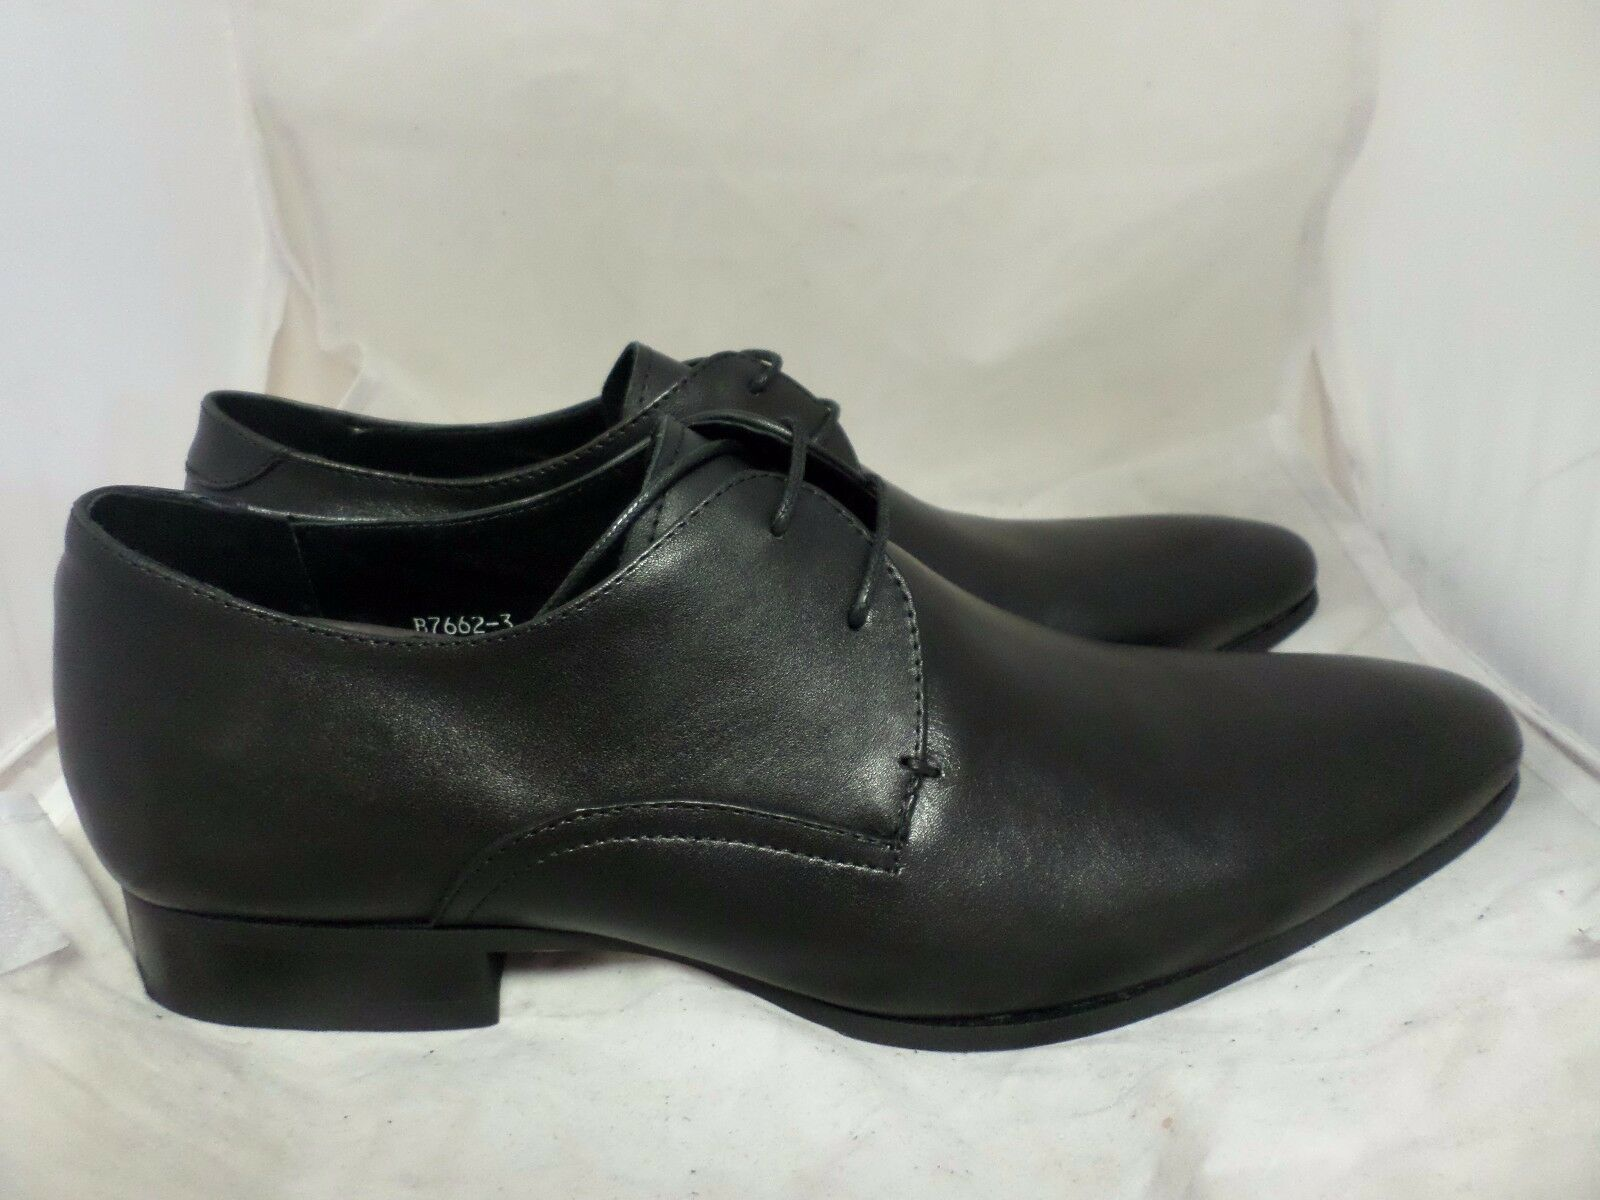 renoma 13 chaussures salew 2b6d87 lg05 renoma cuir moi 13 style chez TTUwrd